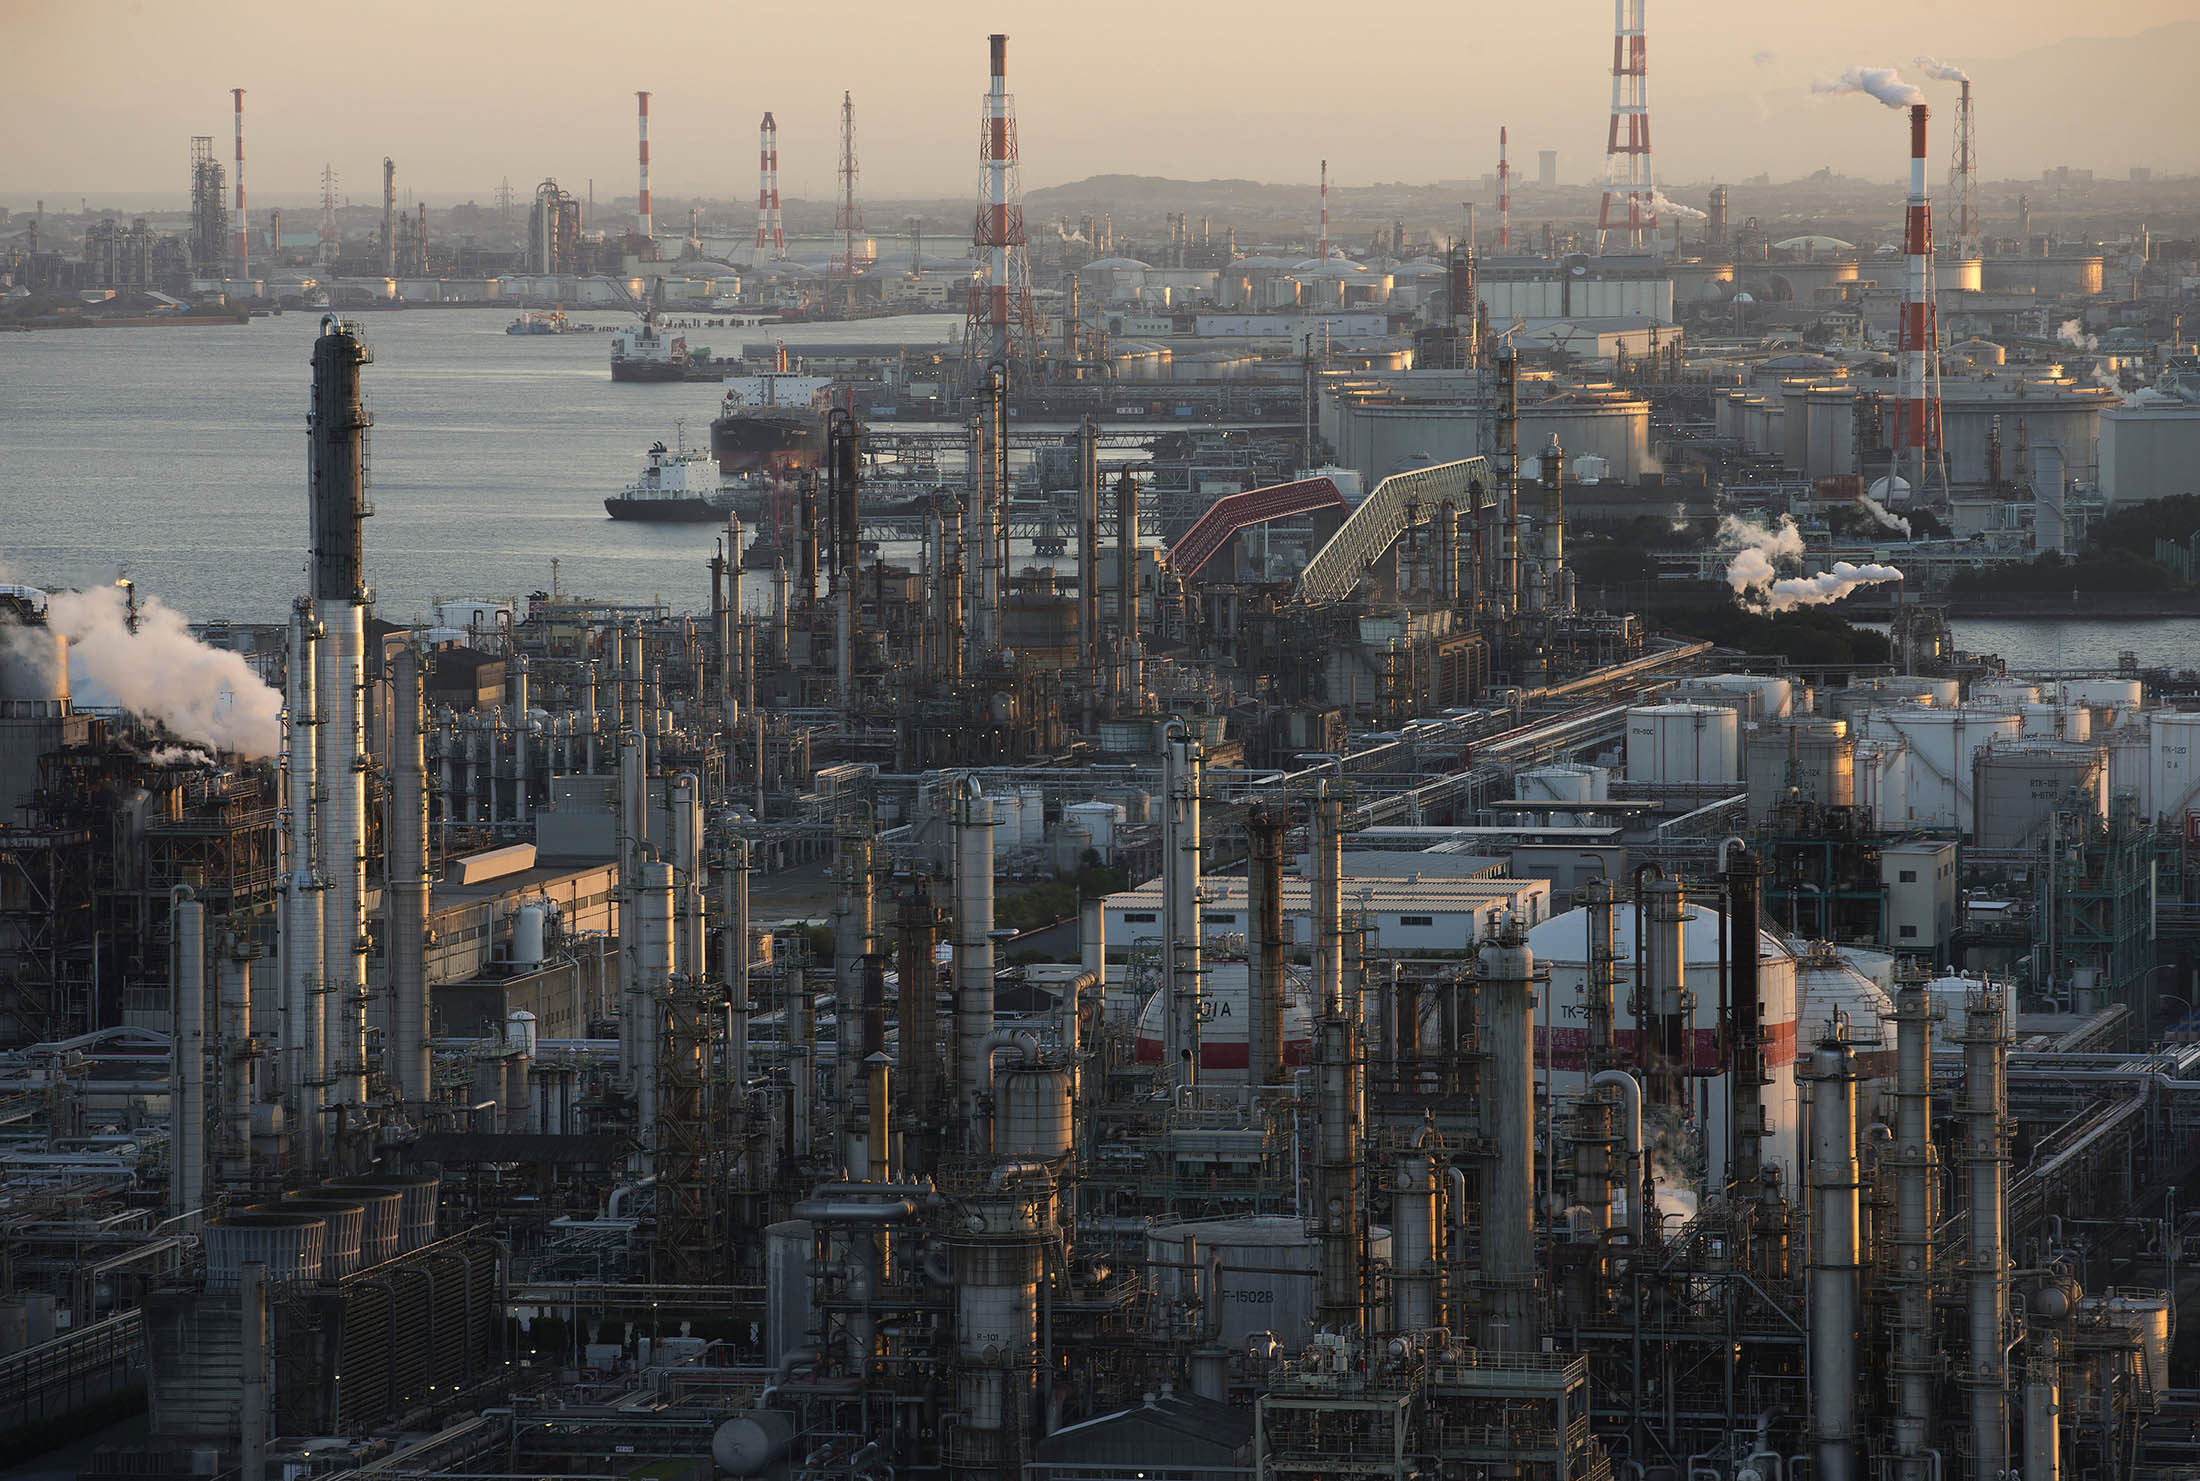 Chemical plants and oil refineries stand at the Yokkaichi industrial complex at dusk in Yokkaichi, Mie Prefecture, Japan, on Friday, Oct. 27, 2016. The Paris Agreement, the most sweeping climate change agreement to combat global warming to date, will enter into force Nov. 4. Photographer: Tomohiro Ohsumi/Bloomberg